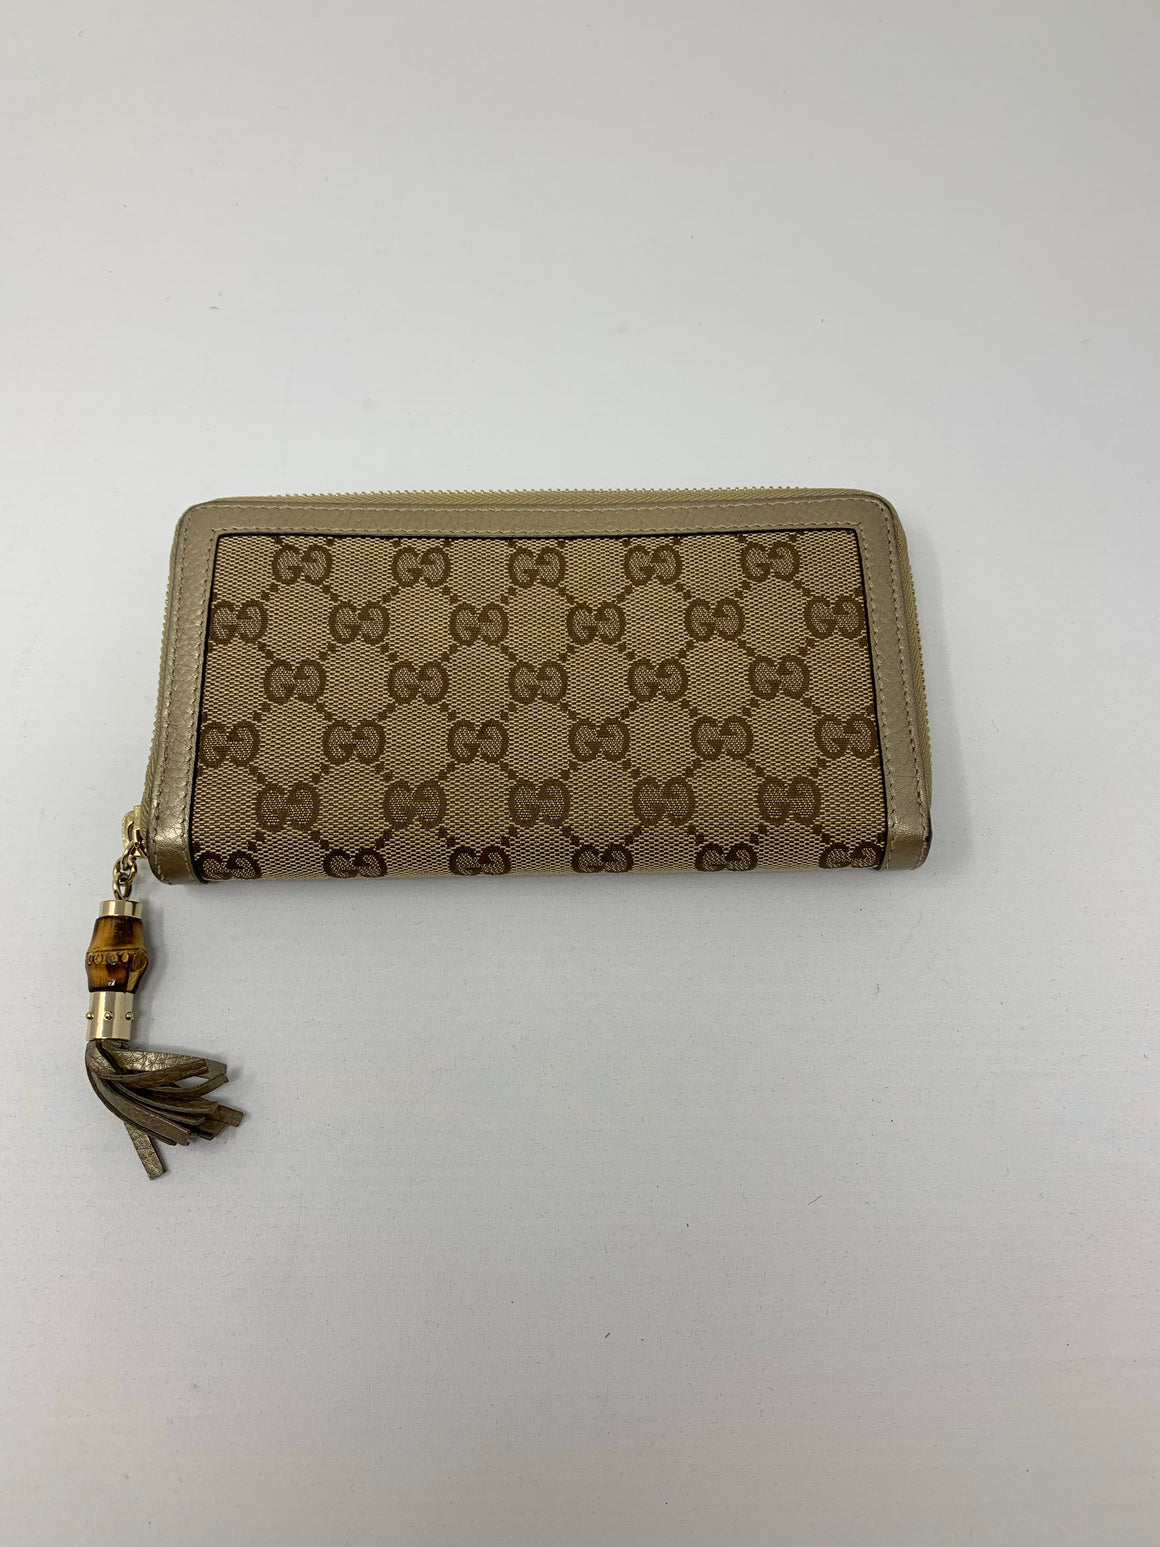 Gucci GG Supreme Wallet! - New York Authentic Designer - Gucci